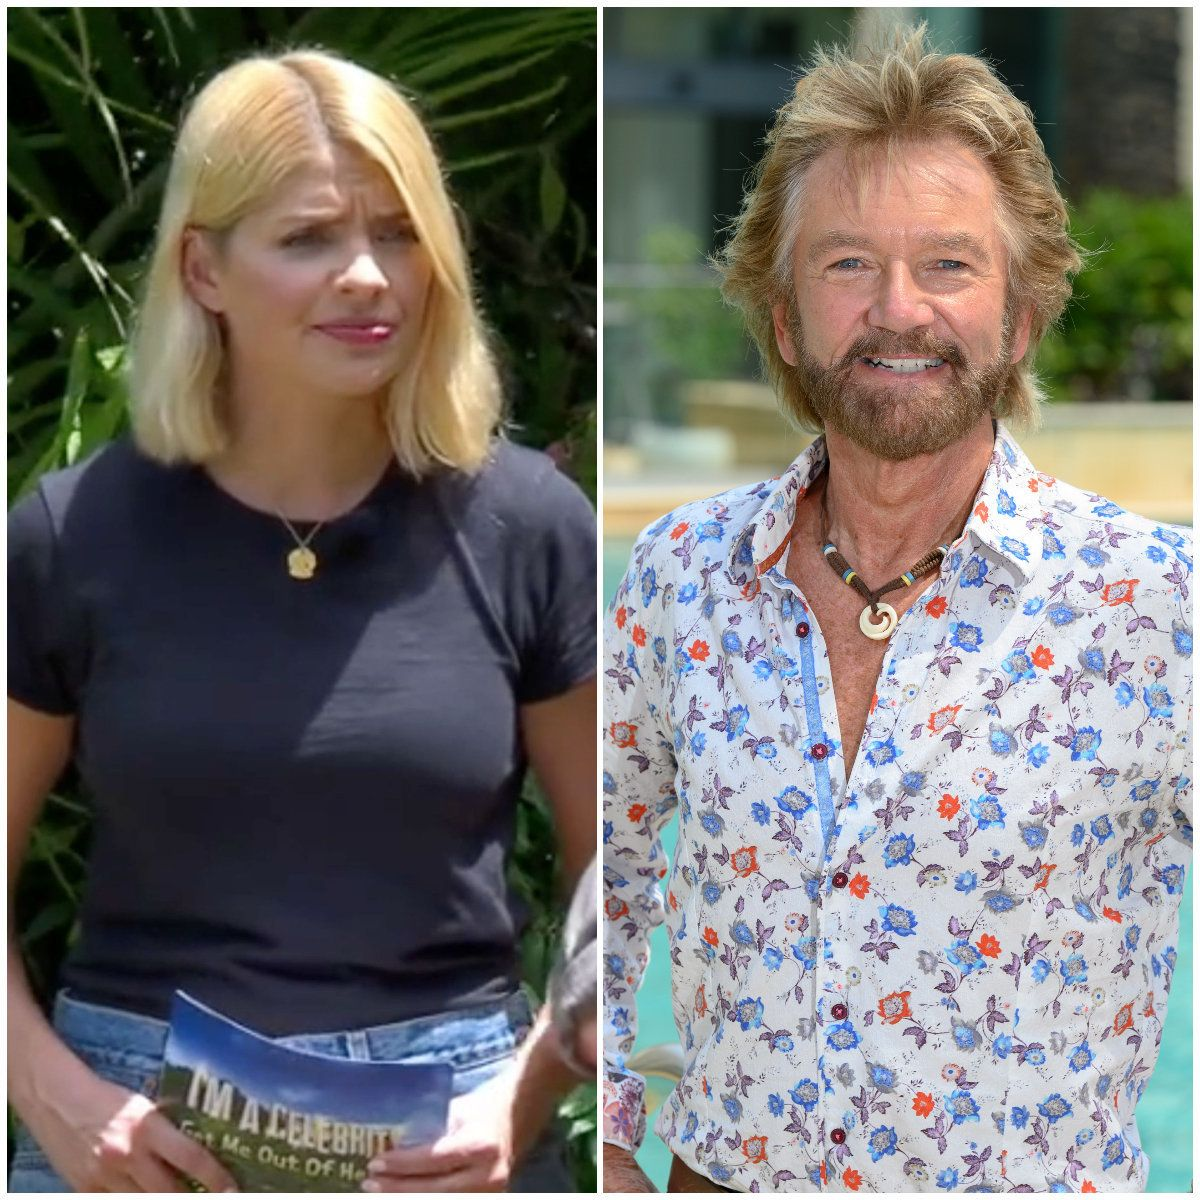 Noel Edmonds Denies Feud With 'I'm A Celebrity' Host Holly